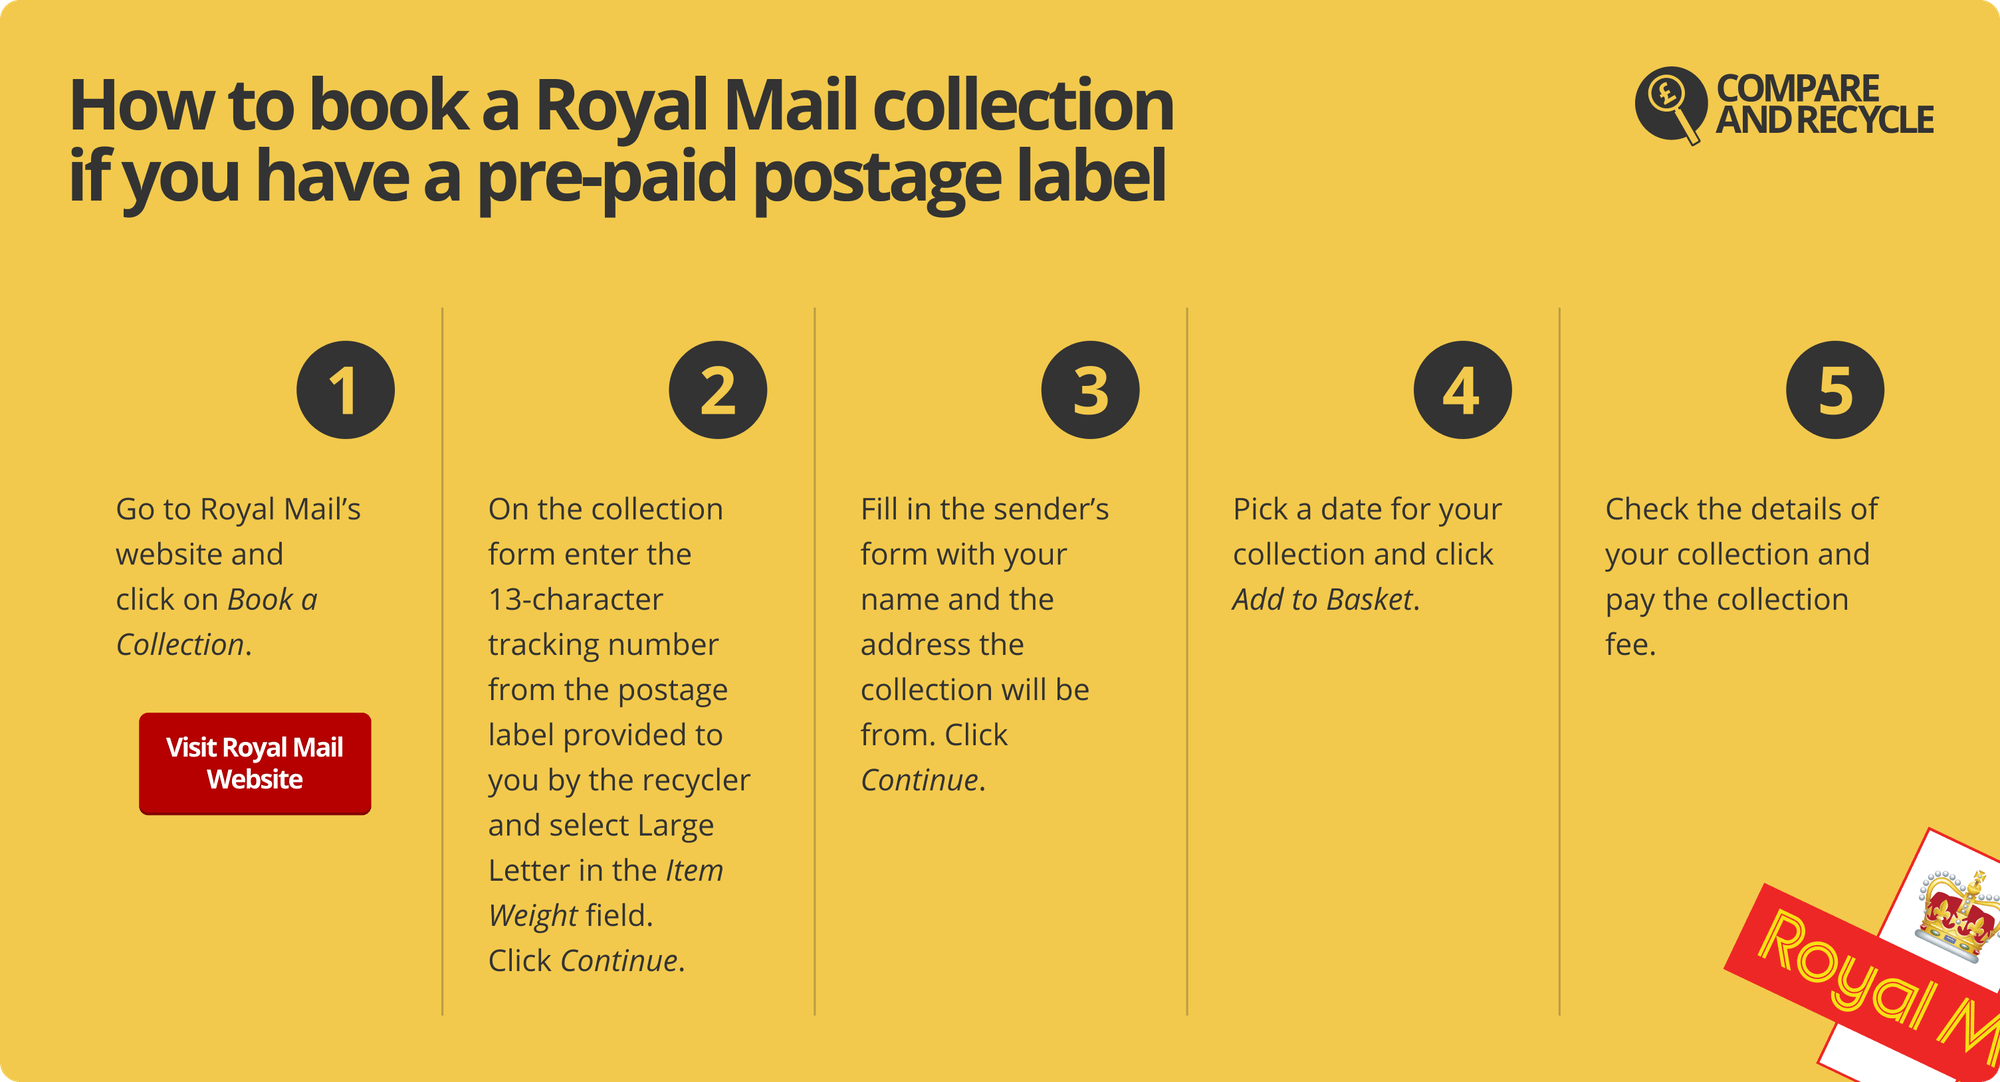 How to Book Royal Mail collection